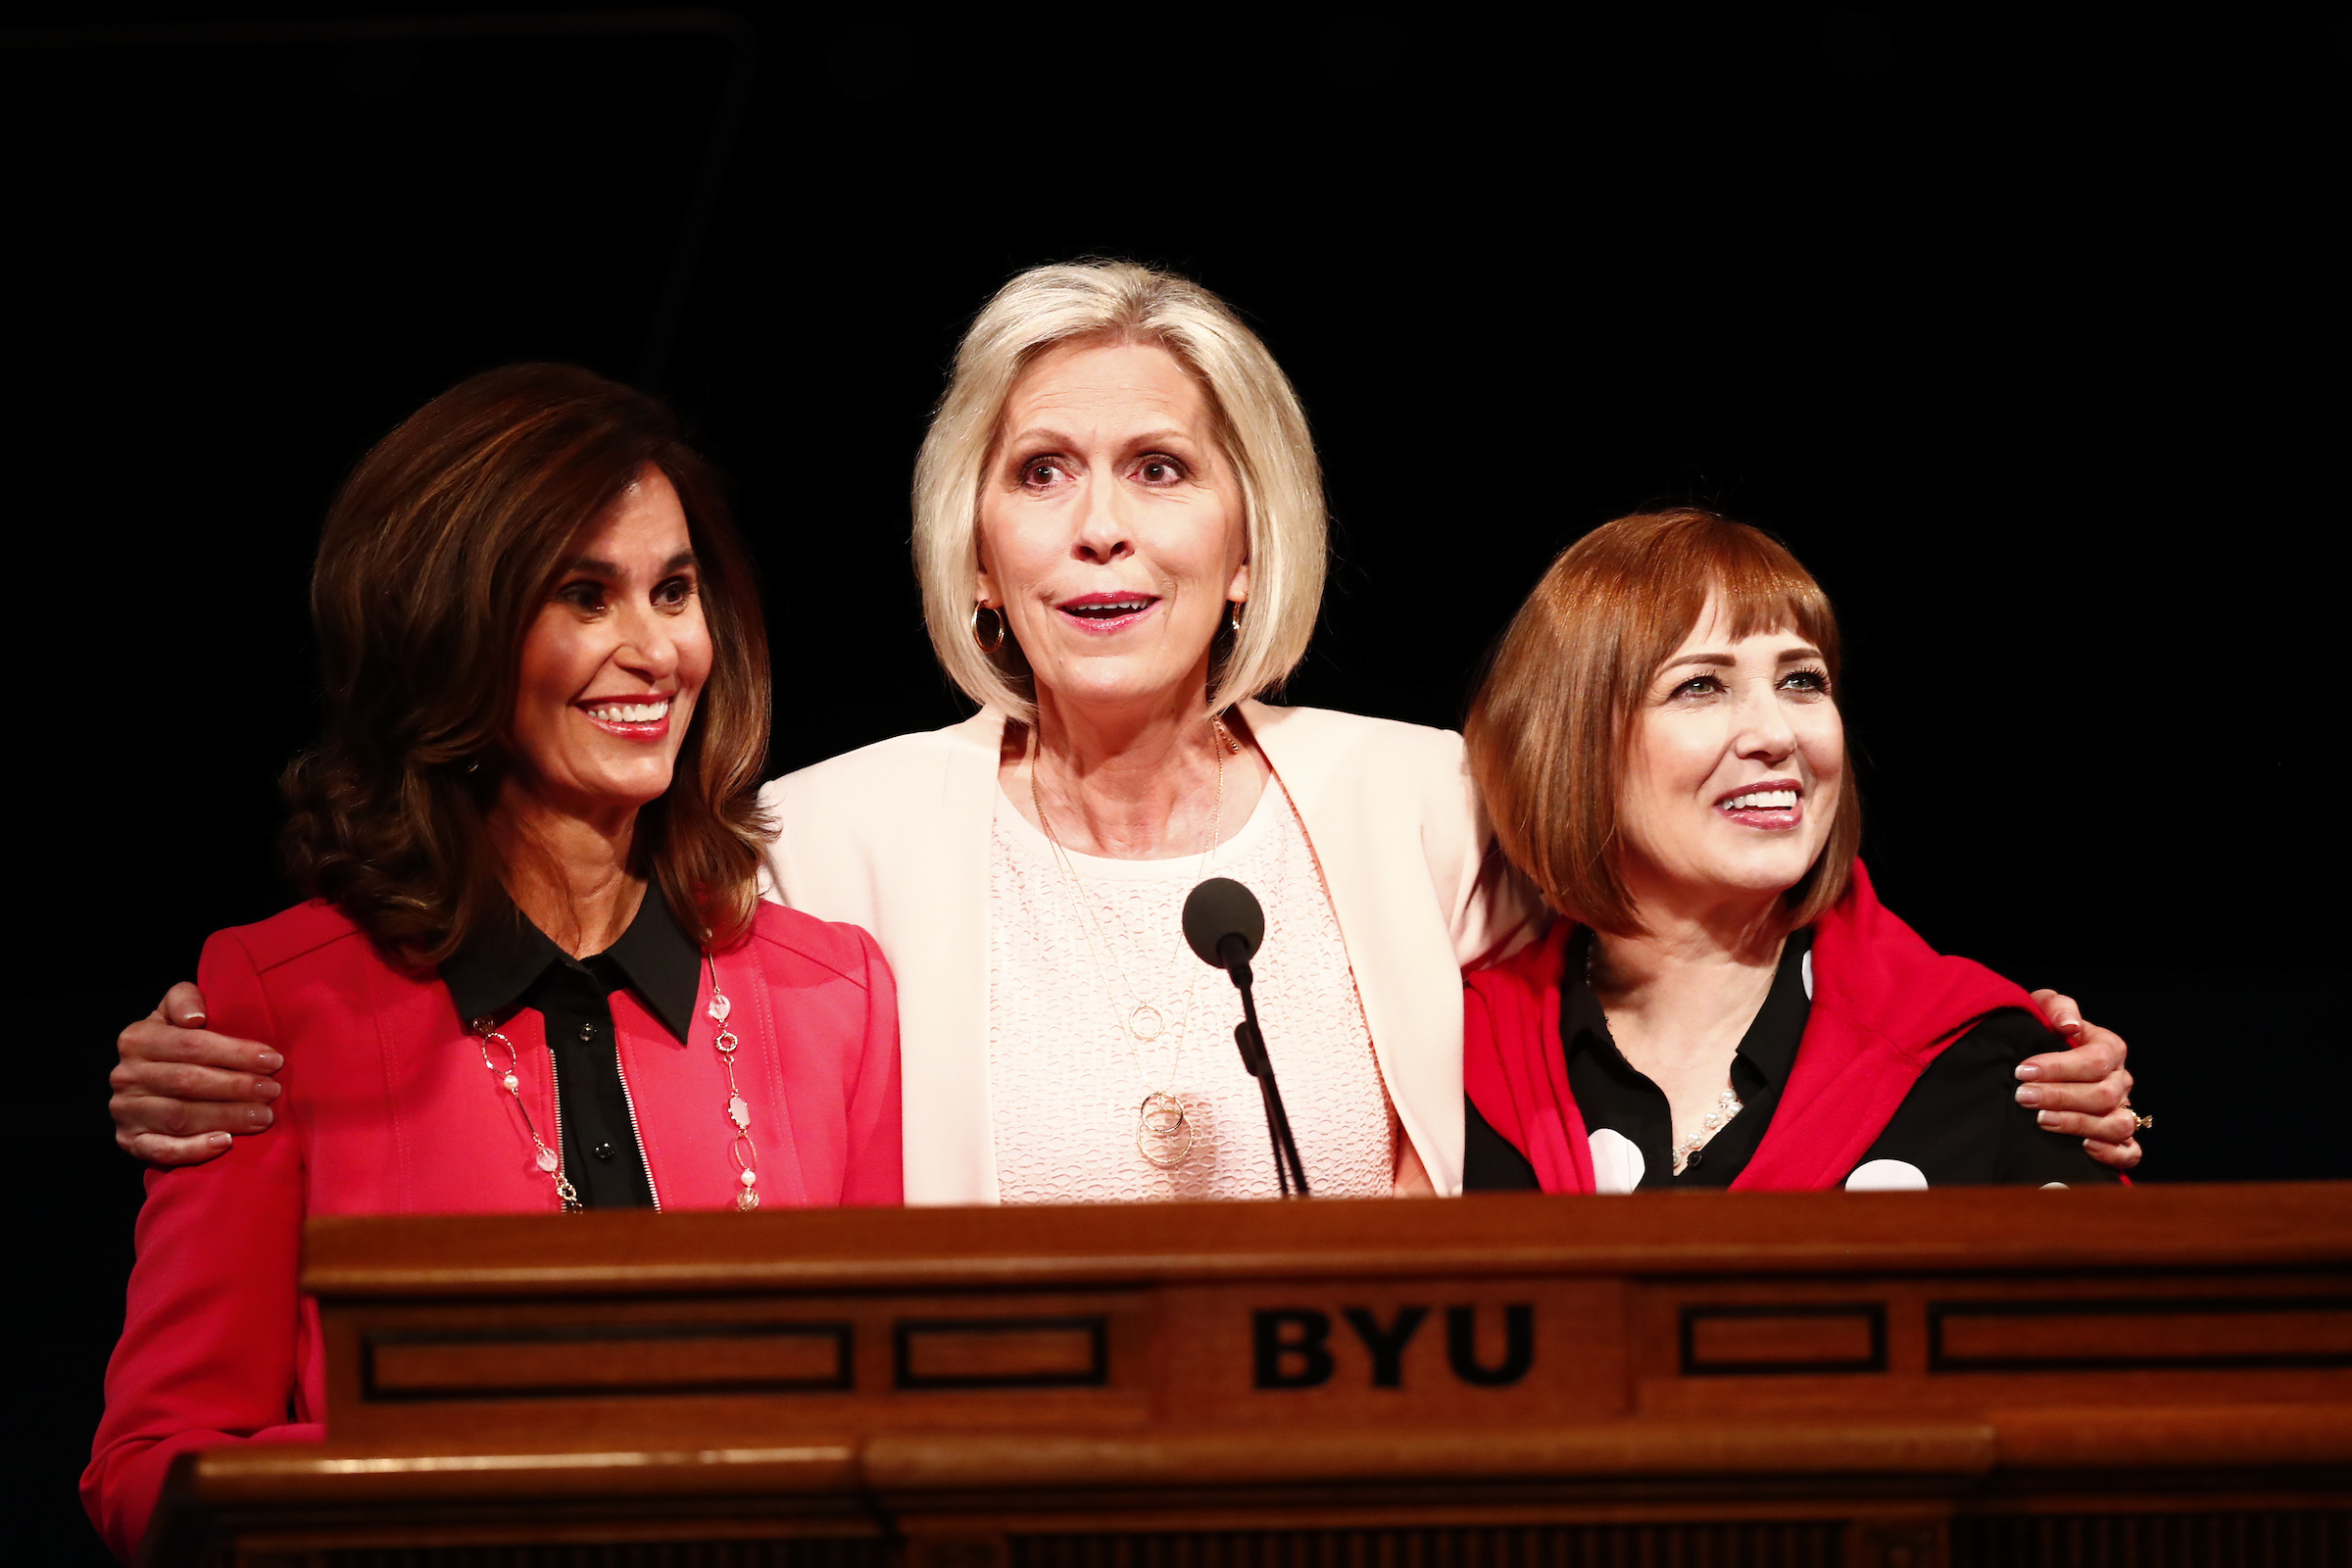 From left, Sister Lisa L. Harkness, Sister Joy D. Jones, and Sister Cristina B. Franco of the Primary general presidency speak in the Marriott Center at BYU during Women's Conference on May 4.